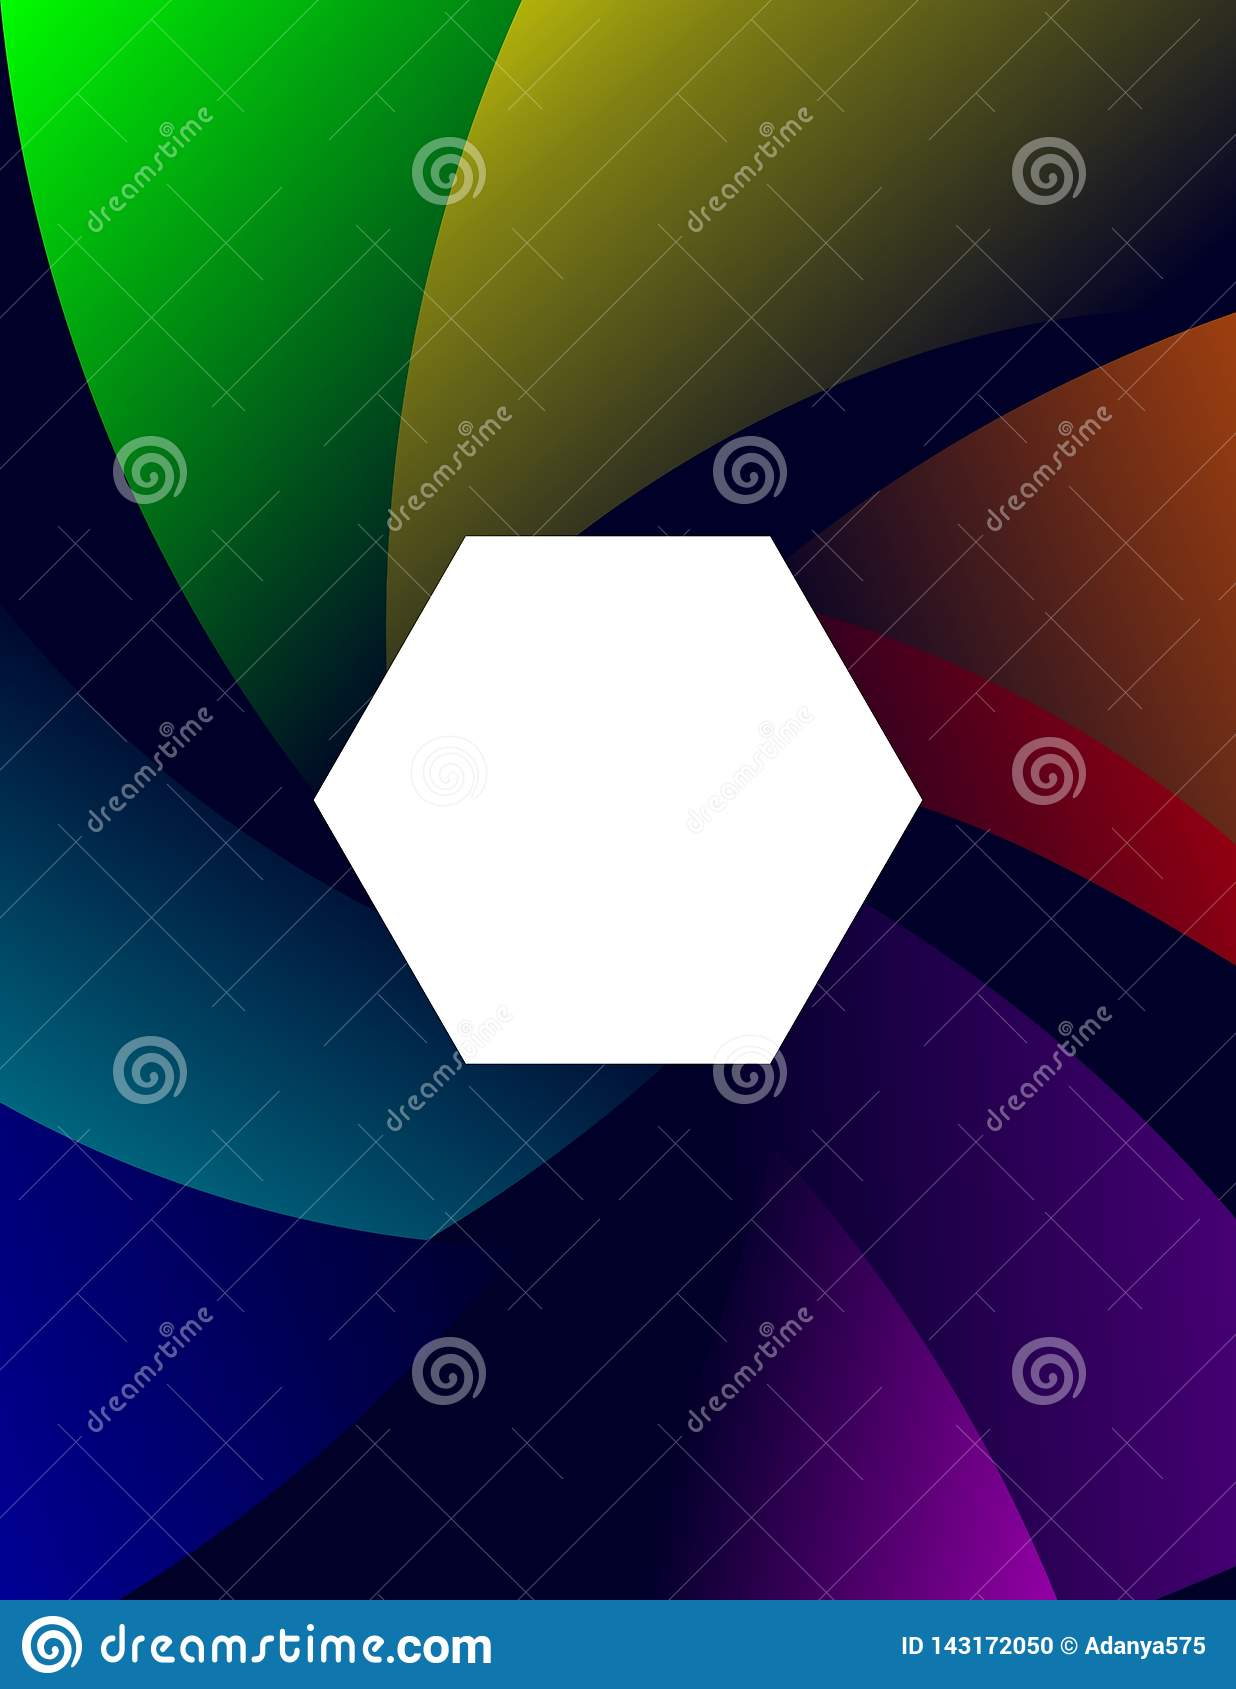 Baground Abstract Colorful Hexagon Flat Design